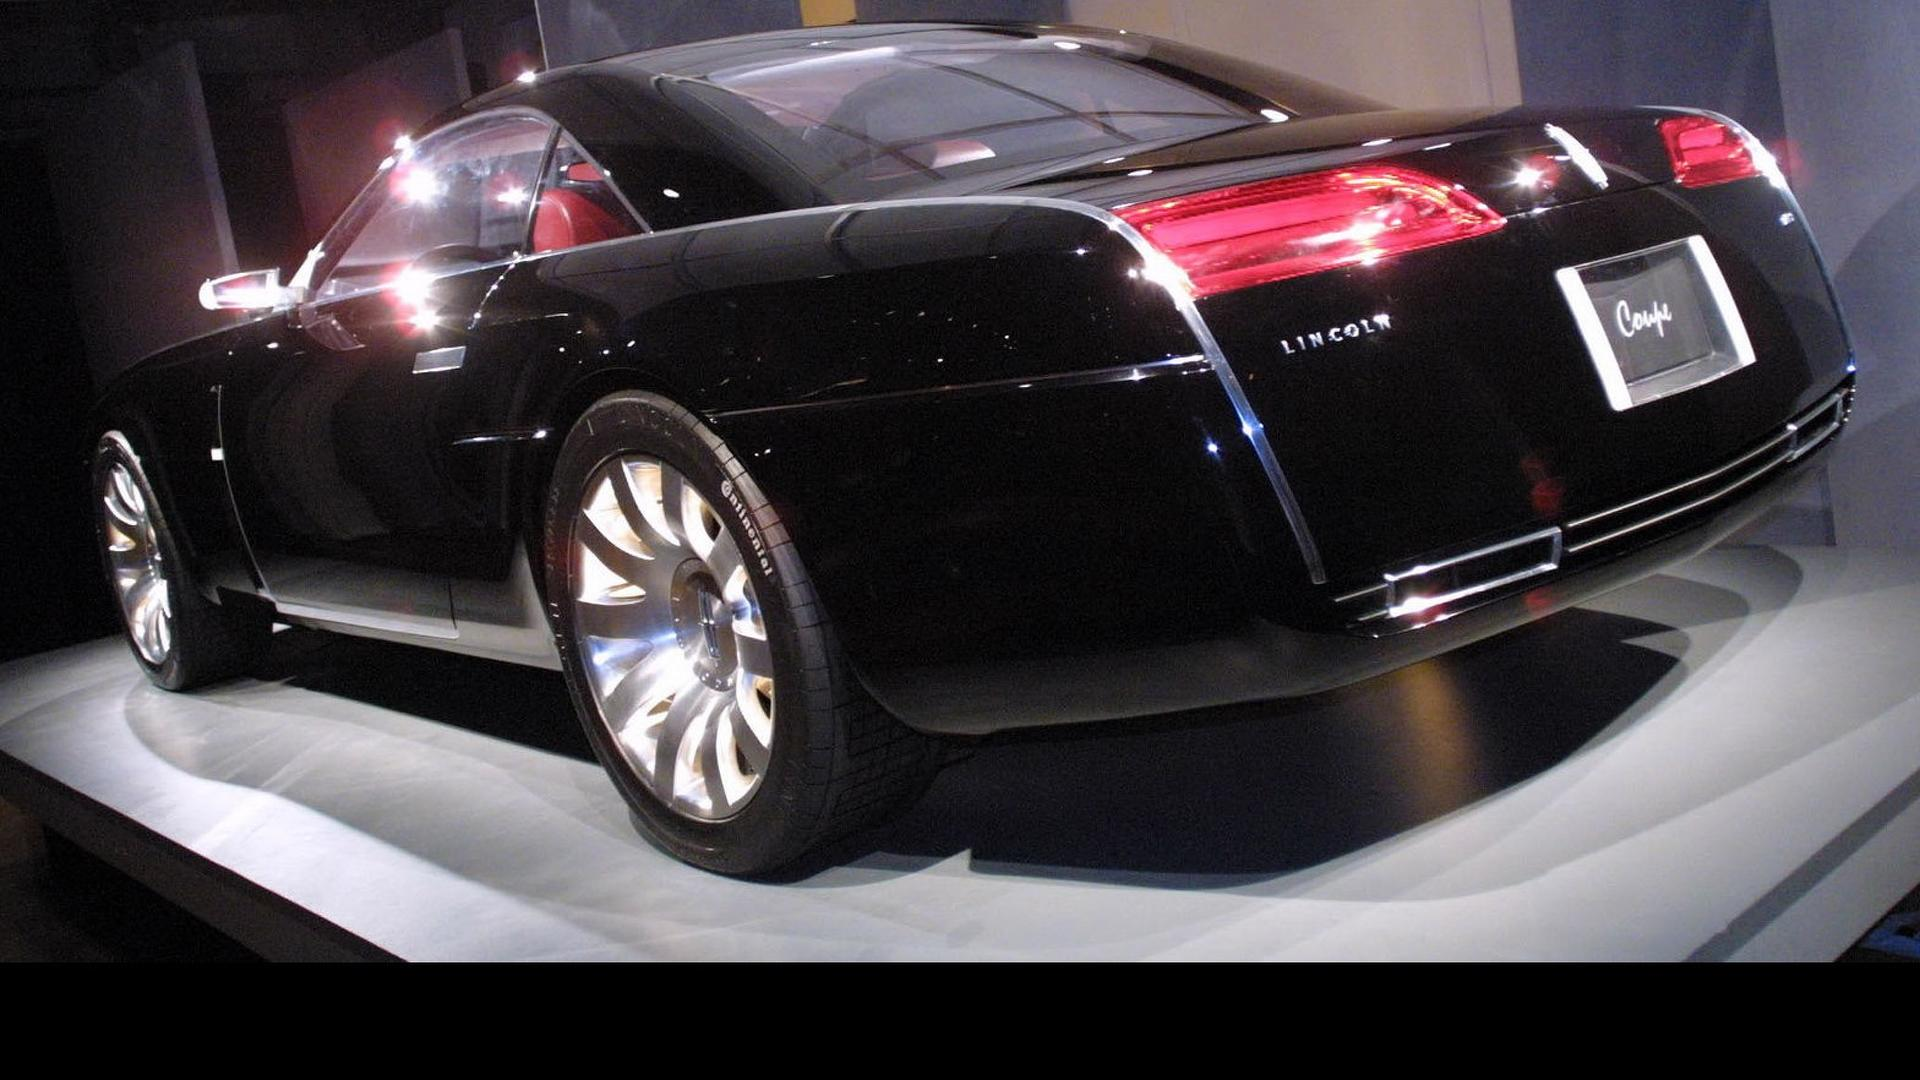 https://icdn-9.motor1.com/images/mgl/Wewpr/s1/2001-lincoln-mk9-concept.jpg